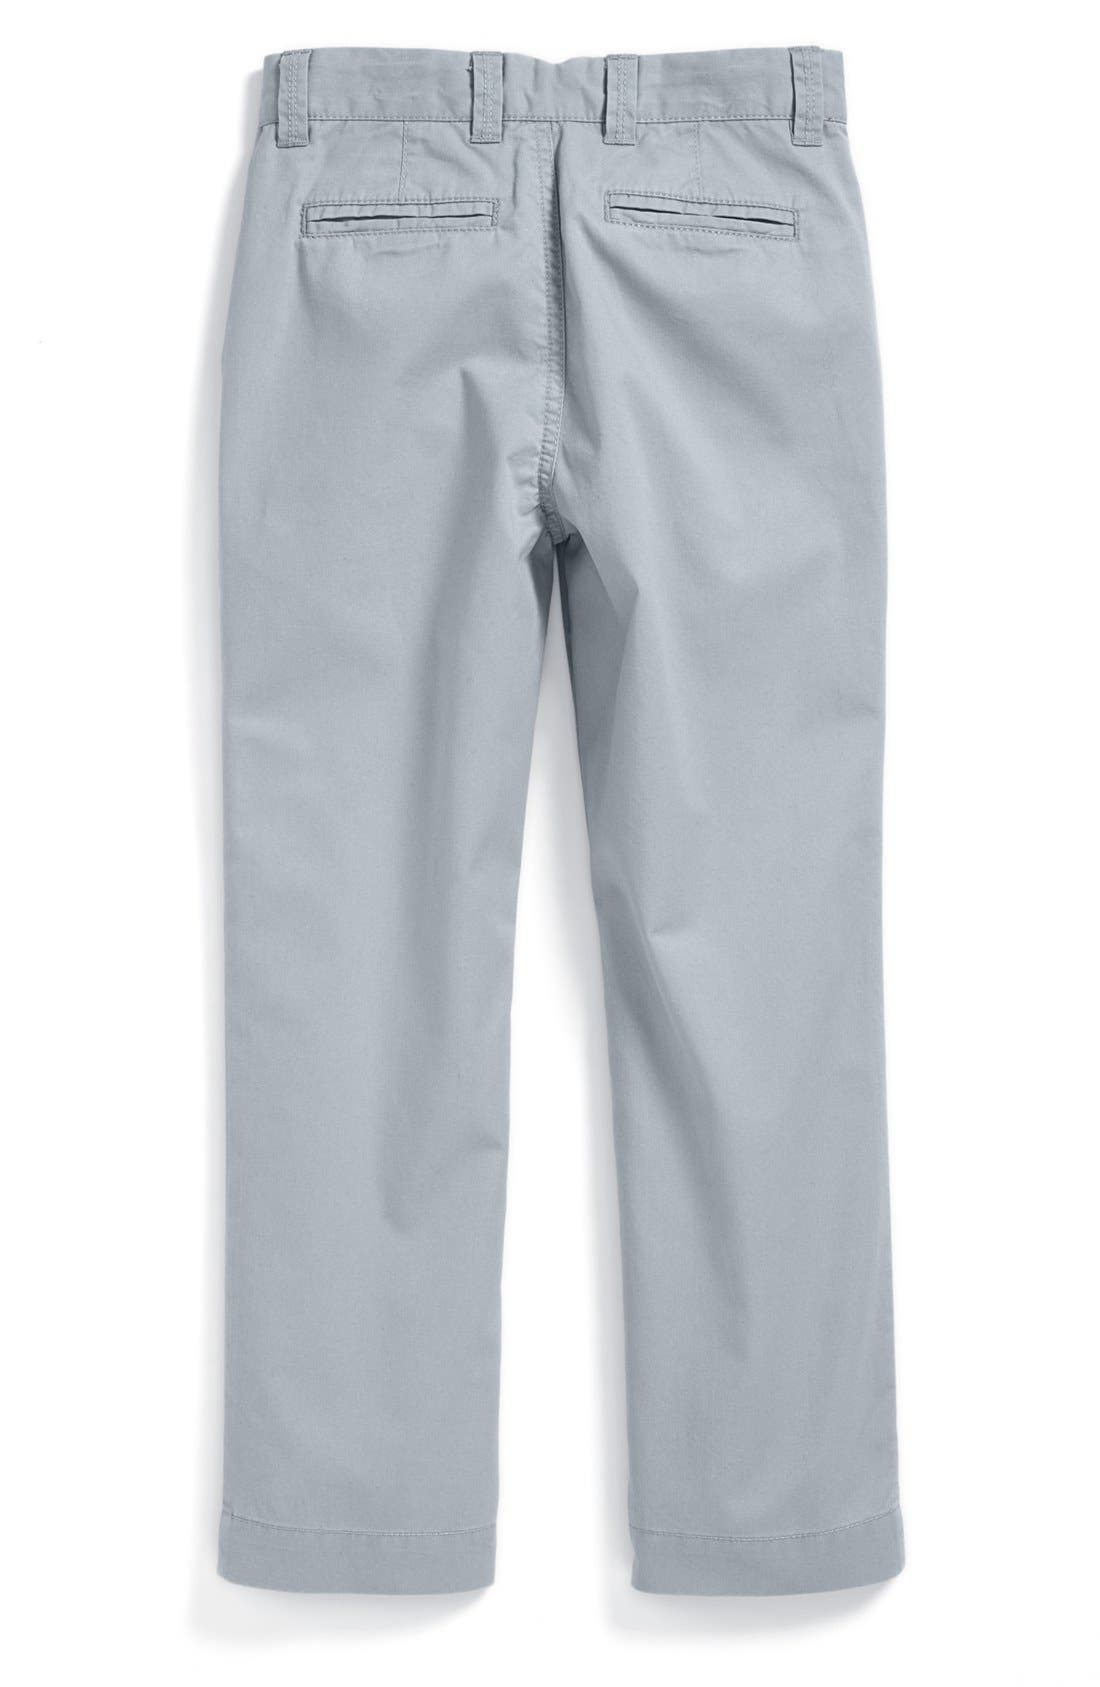 Alternate Image 2  - Tucker + Tate 'Scott' Chino Pants (Little Boys & Big Boys)